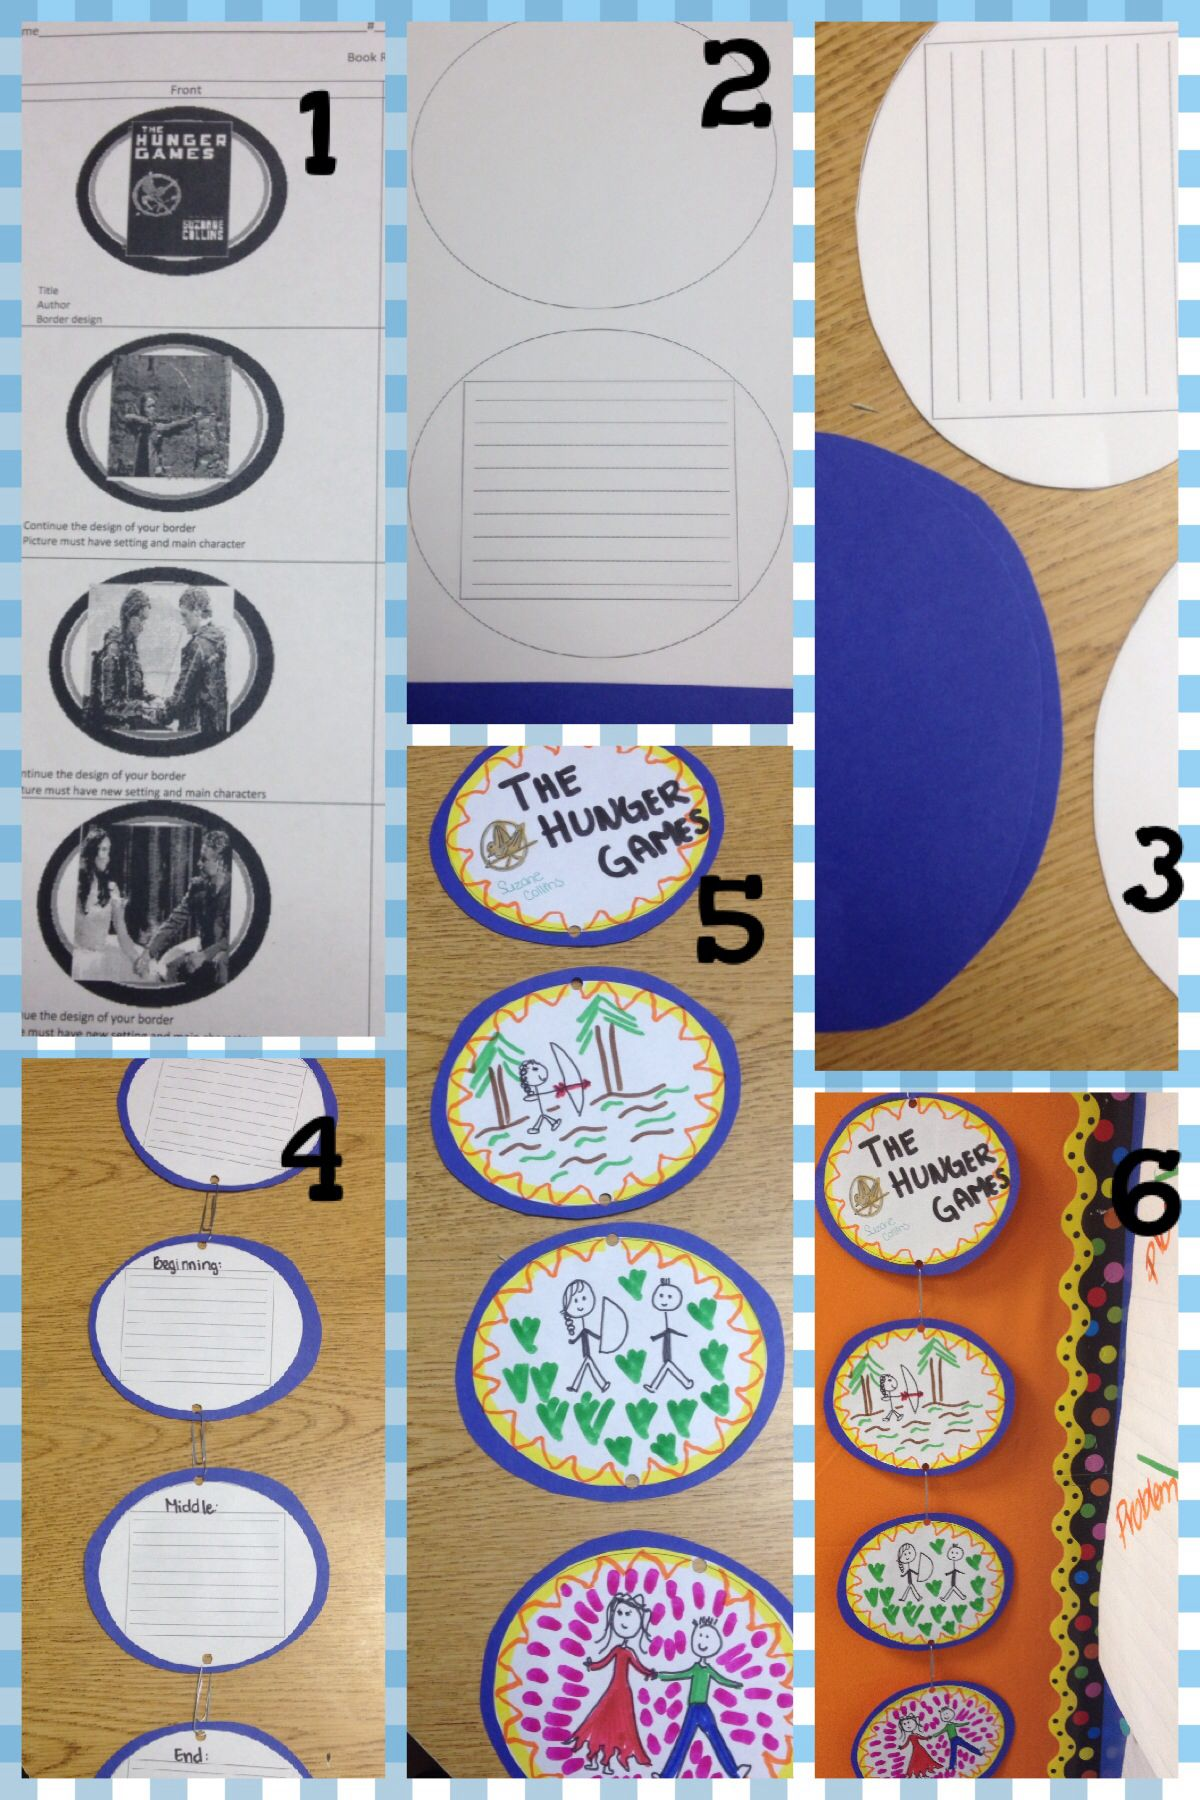 6th grade book report projects These 10 creative book report ideas will spice things up for the better a quick web search will reveal that there are many ideas out there for creative book reports, but they are not all good ideas once your students have completed their projects, be sure to allow them time to share with the class.